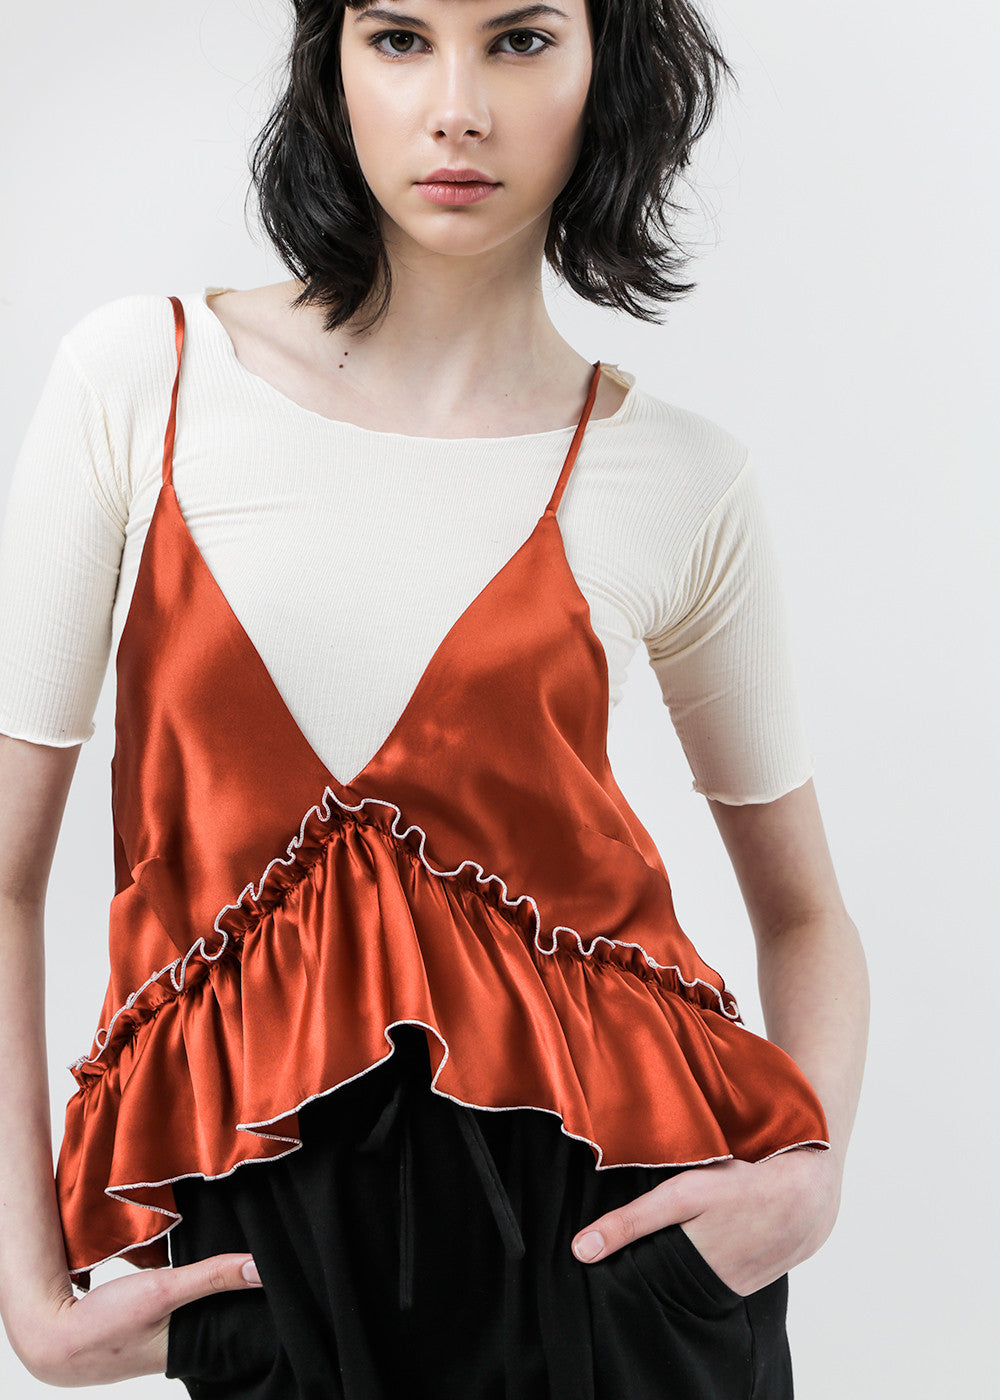 Arcana NYC Paprika Lilith Convertible Slip Dress — Shop sustainable fashion and slow fashion at New Classics Studios